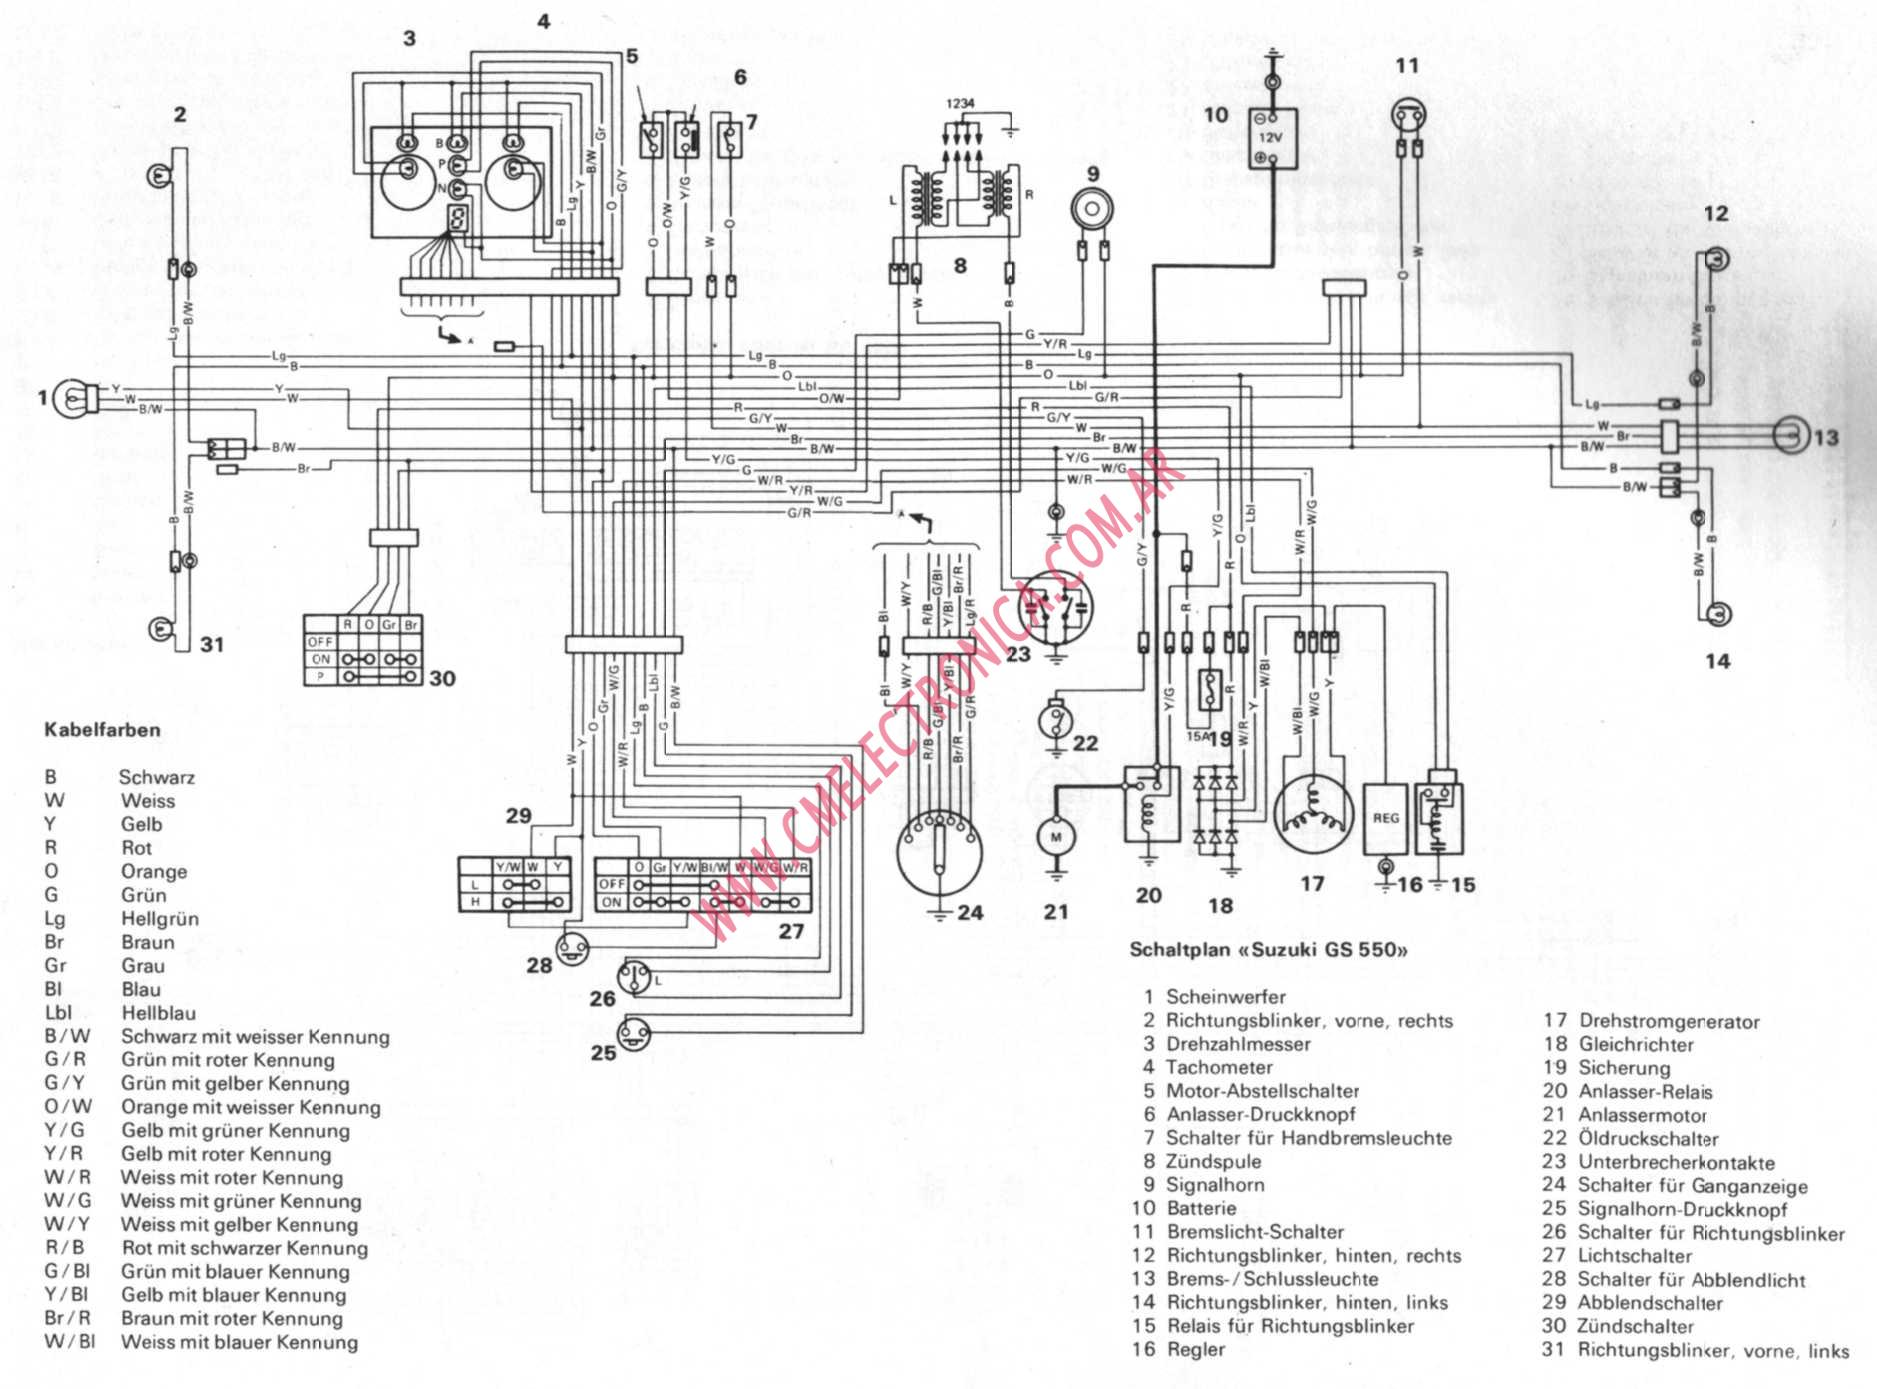 suzuki gs550 suzuki gs550 wiring diagram suzuki gsxr 750 wiring diagram gs850g wiring diagram at n-0.co